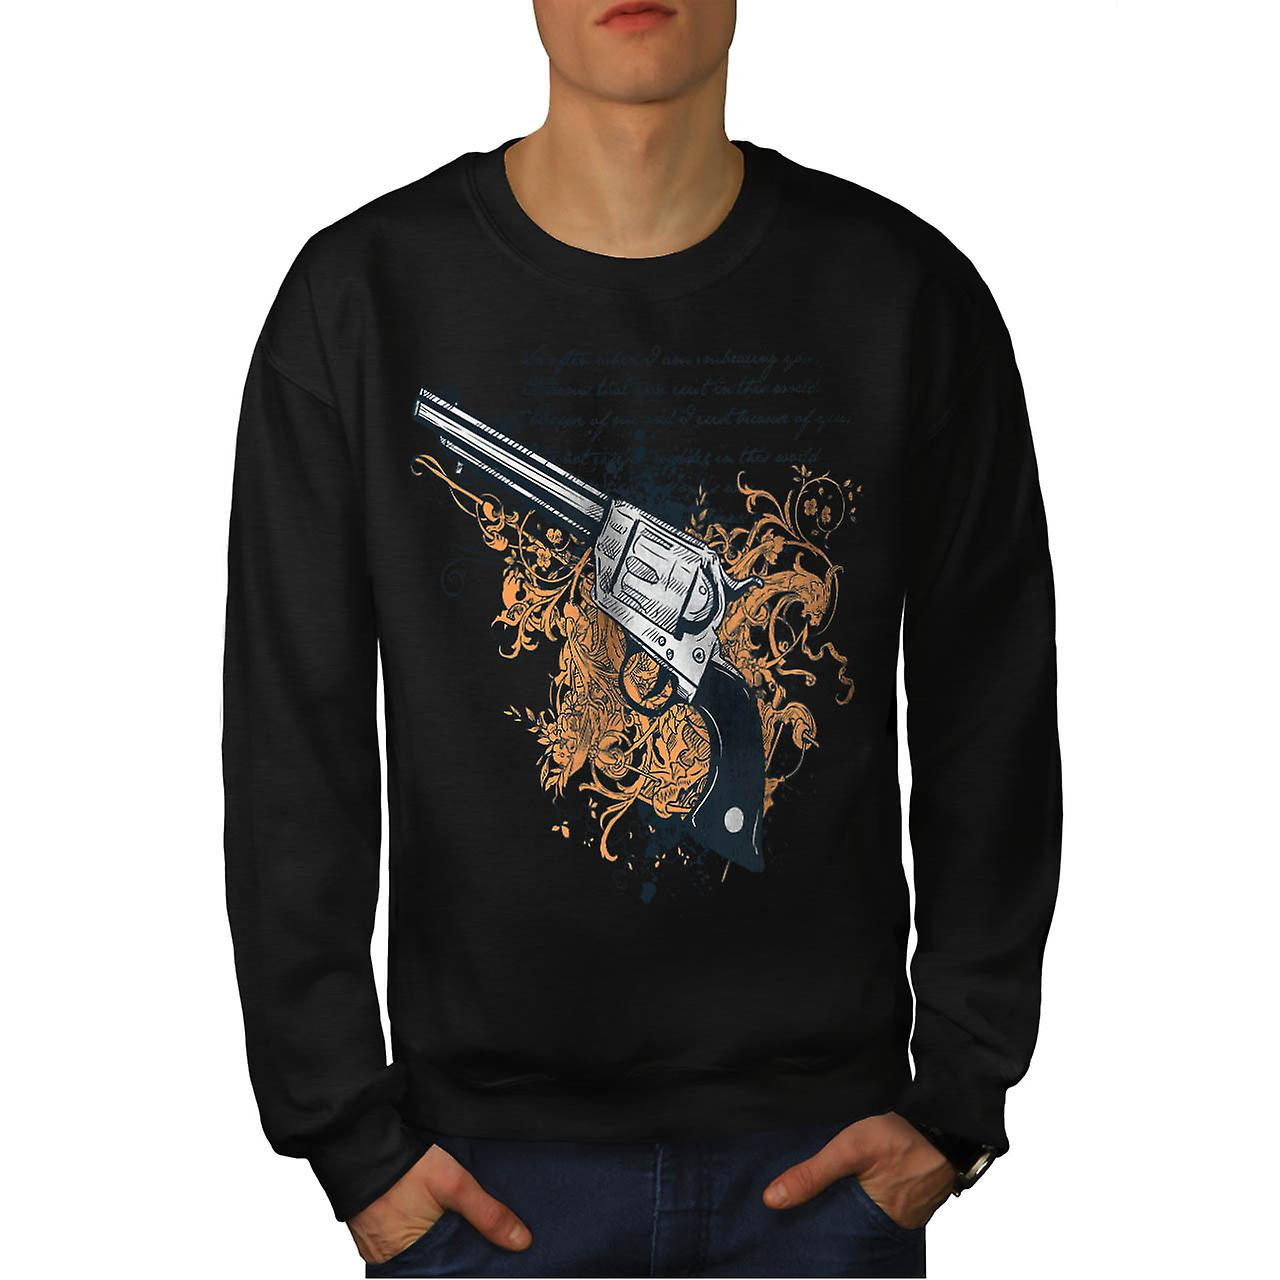 Deadly Weapon Pistol Gun Battle Men Black Sweatshirt | Wellcoda